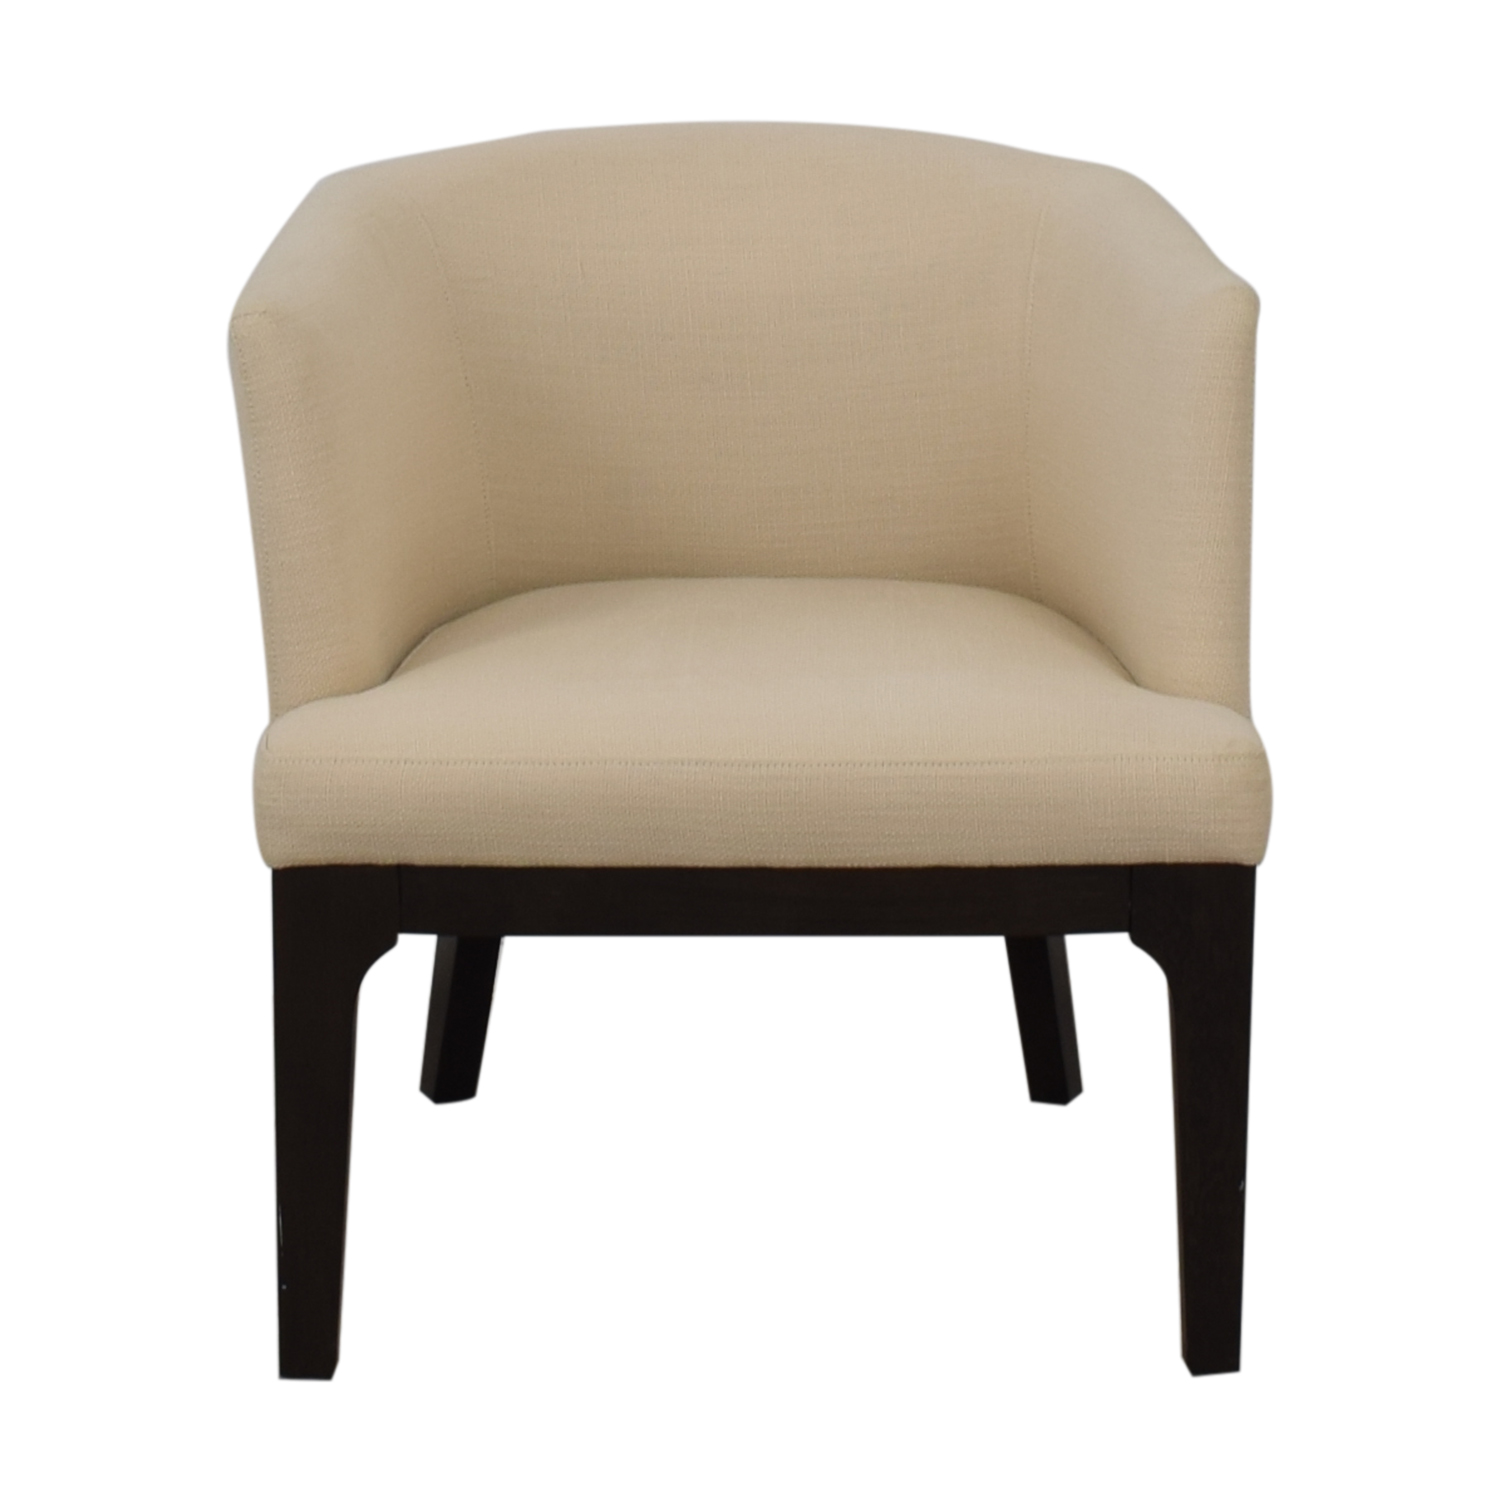 buy West Elm West Elm Oliver Chair online